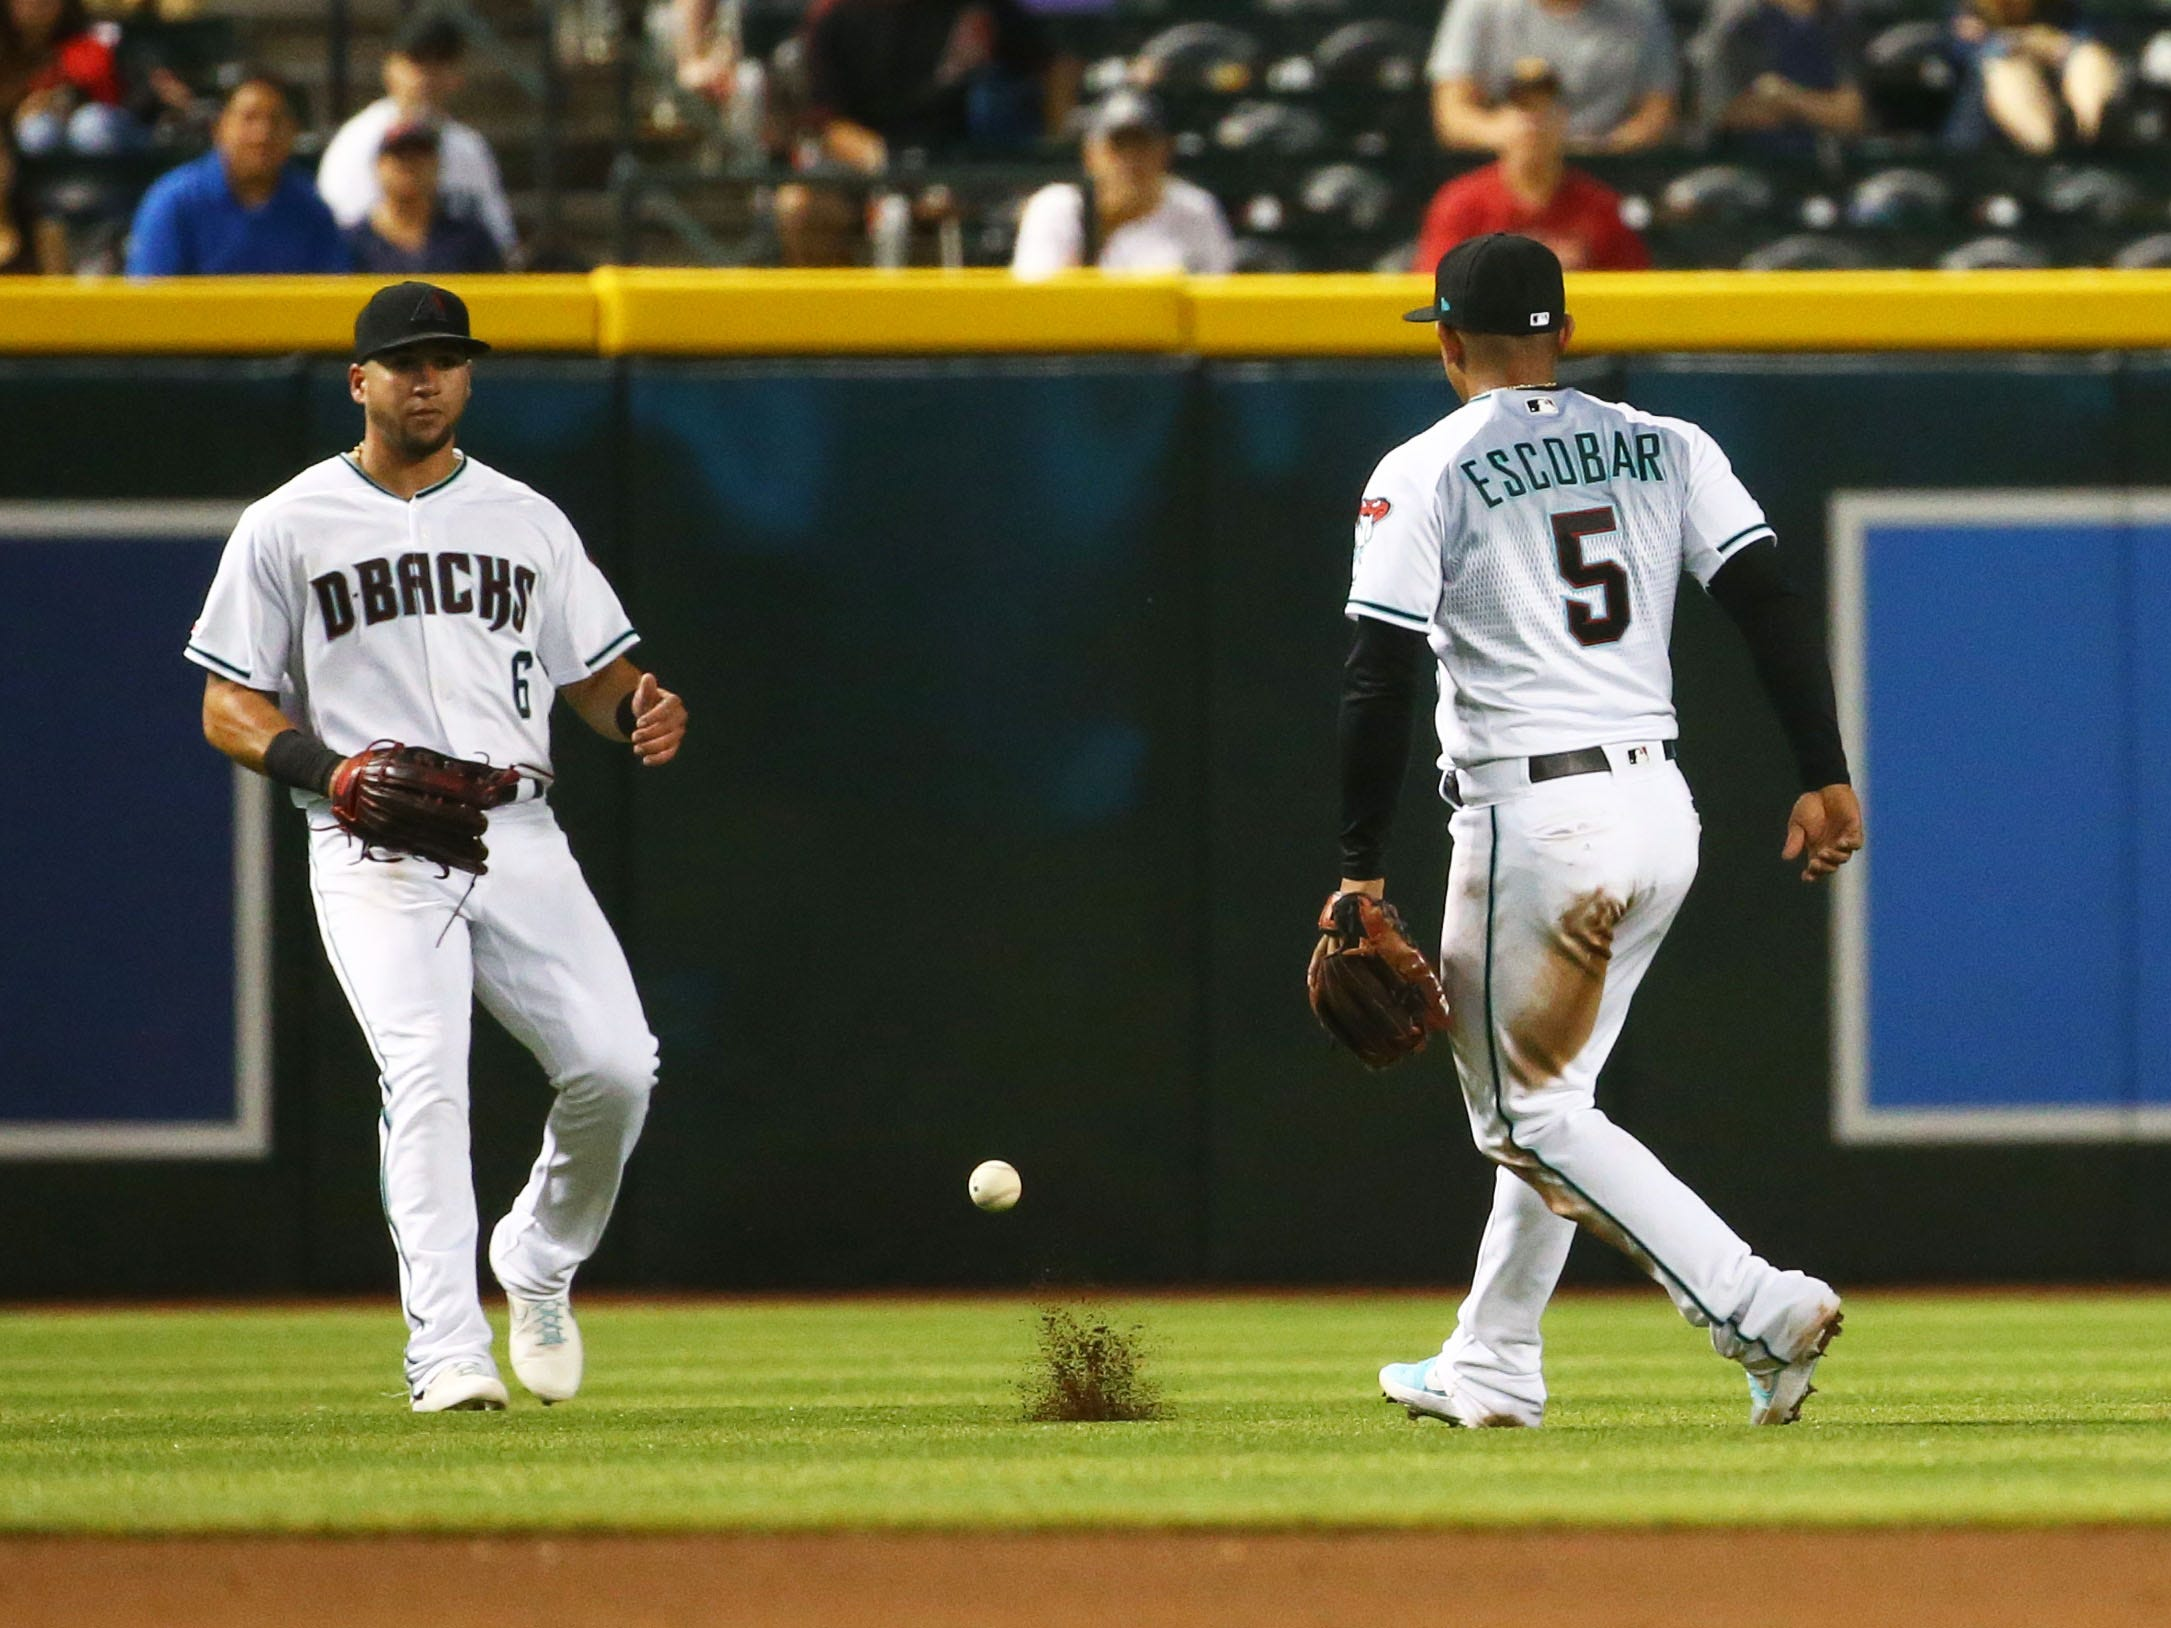 Arizona Diamondbacks David Peralta and Eduardo Escobar (5) watch the fly ball fall into left field hit by Pittsburgh Pirates Melky Cabrera in the fifth inning on May. 14, 2019 at Chase Field in Phoenix, Ariz.